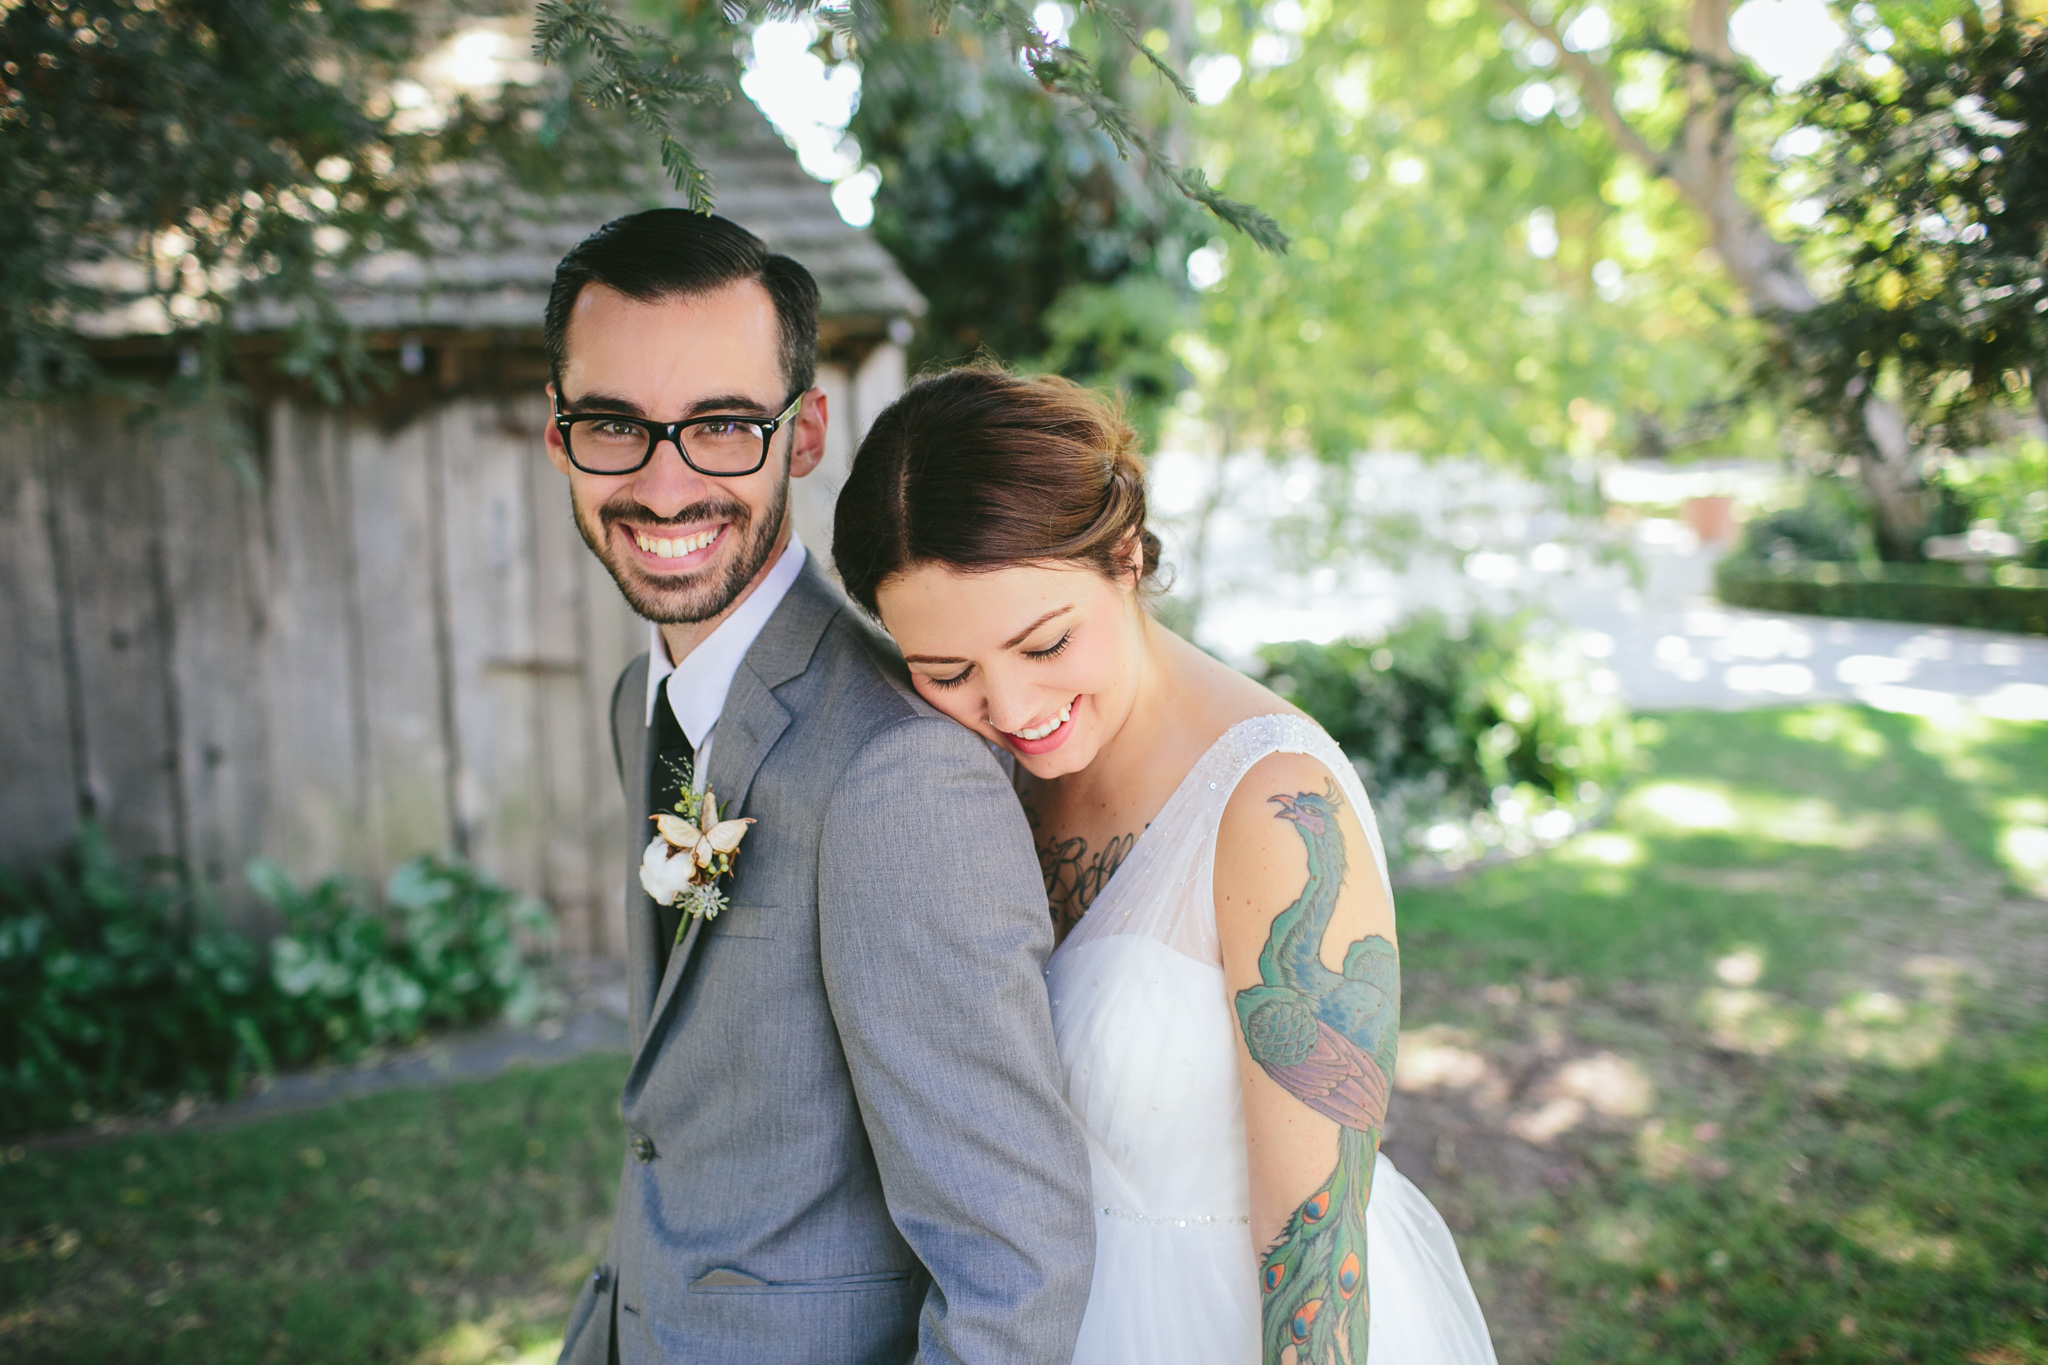 Amy+Nick-WEDDING_KellyBoitanoPhotography20151219_0042